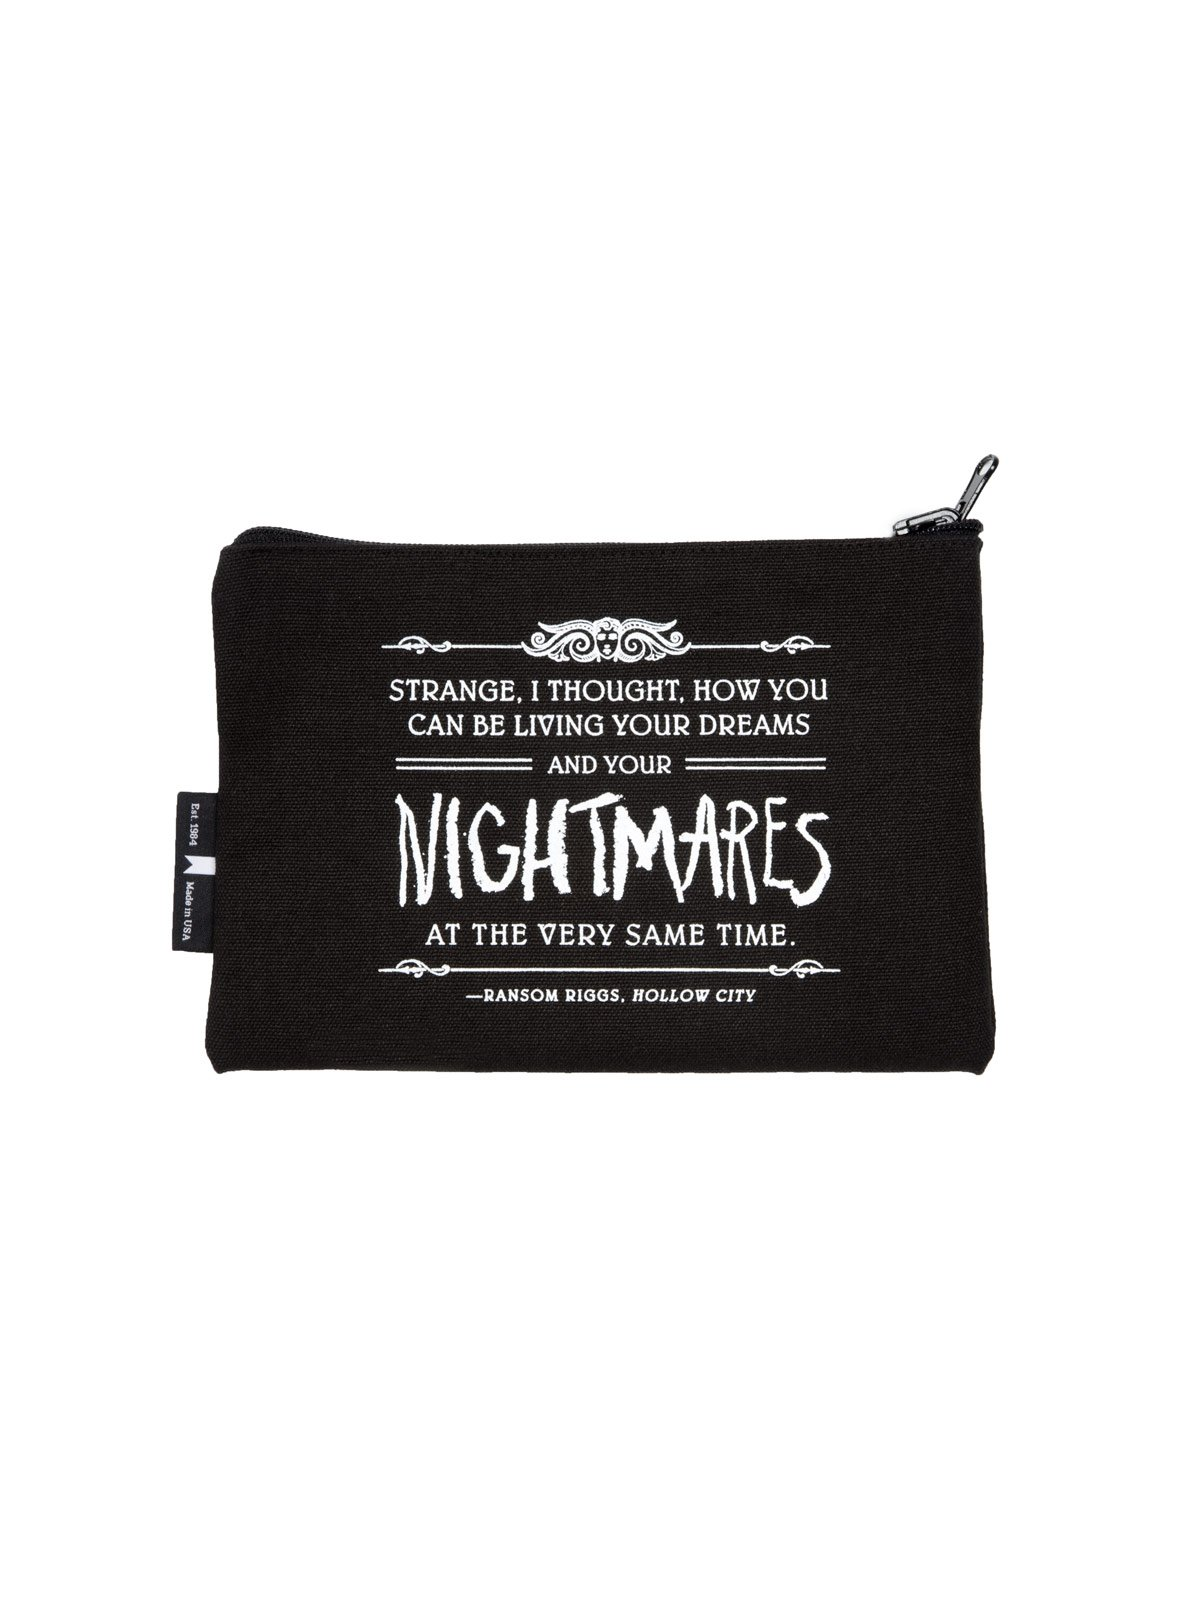 Miss Peregrine's Home Out Of Print Canvas Pouch